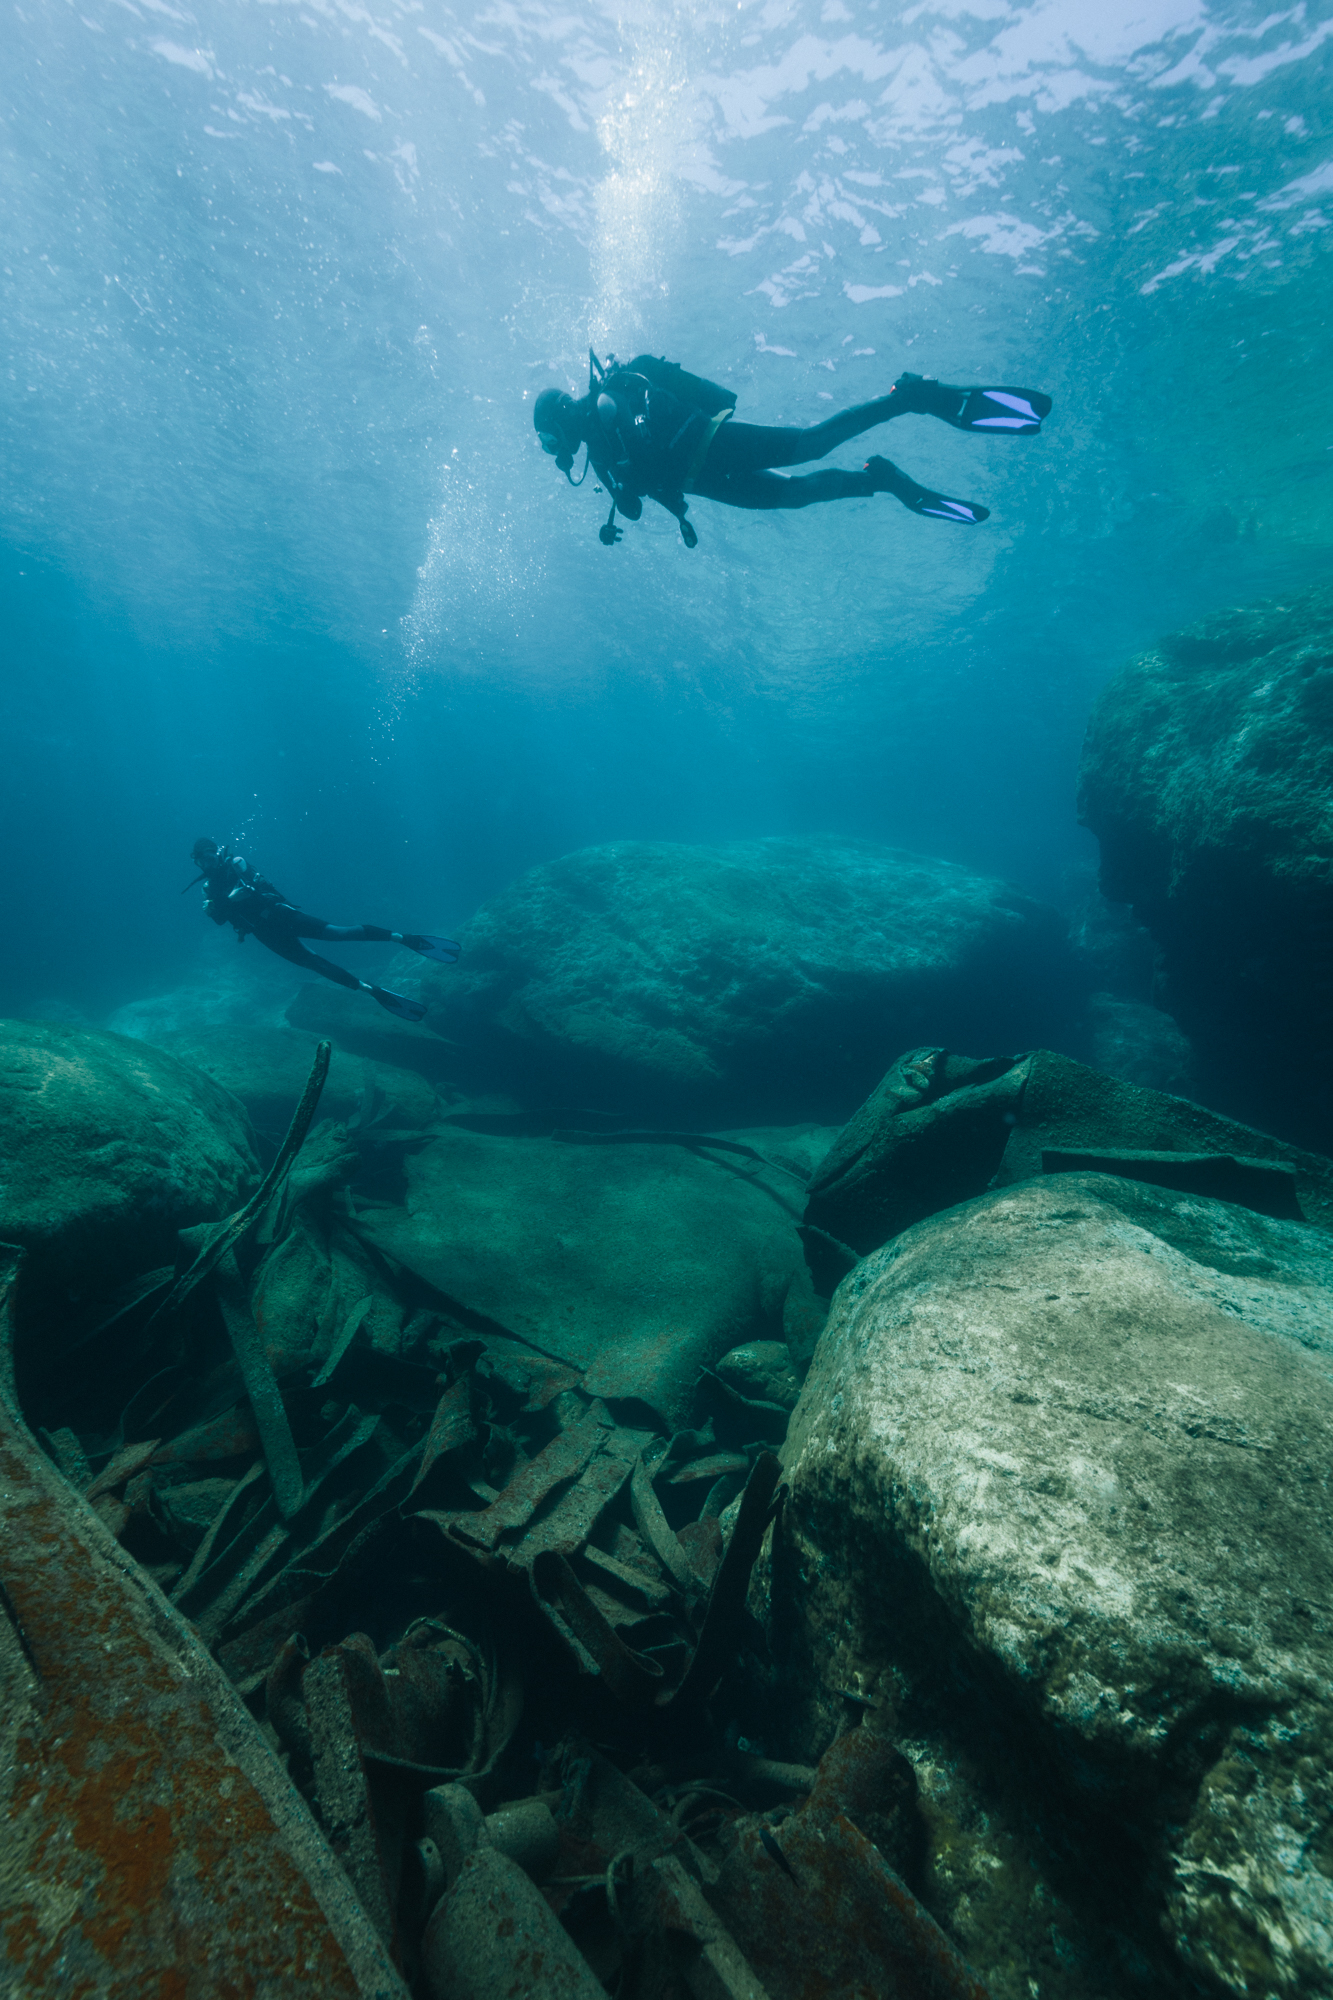 On the same trip visiting marine scientist Giuseppe Notarbartolo di Sciara, we went diving to explore the underwater world of the Mediterranean in Greece to see how empty and devoid of life it is from centuries of overfishing.